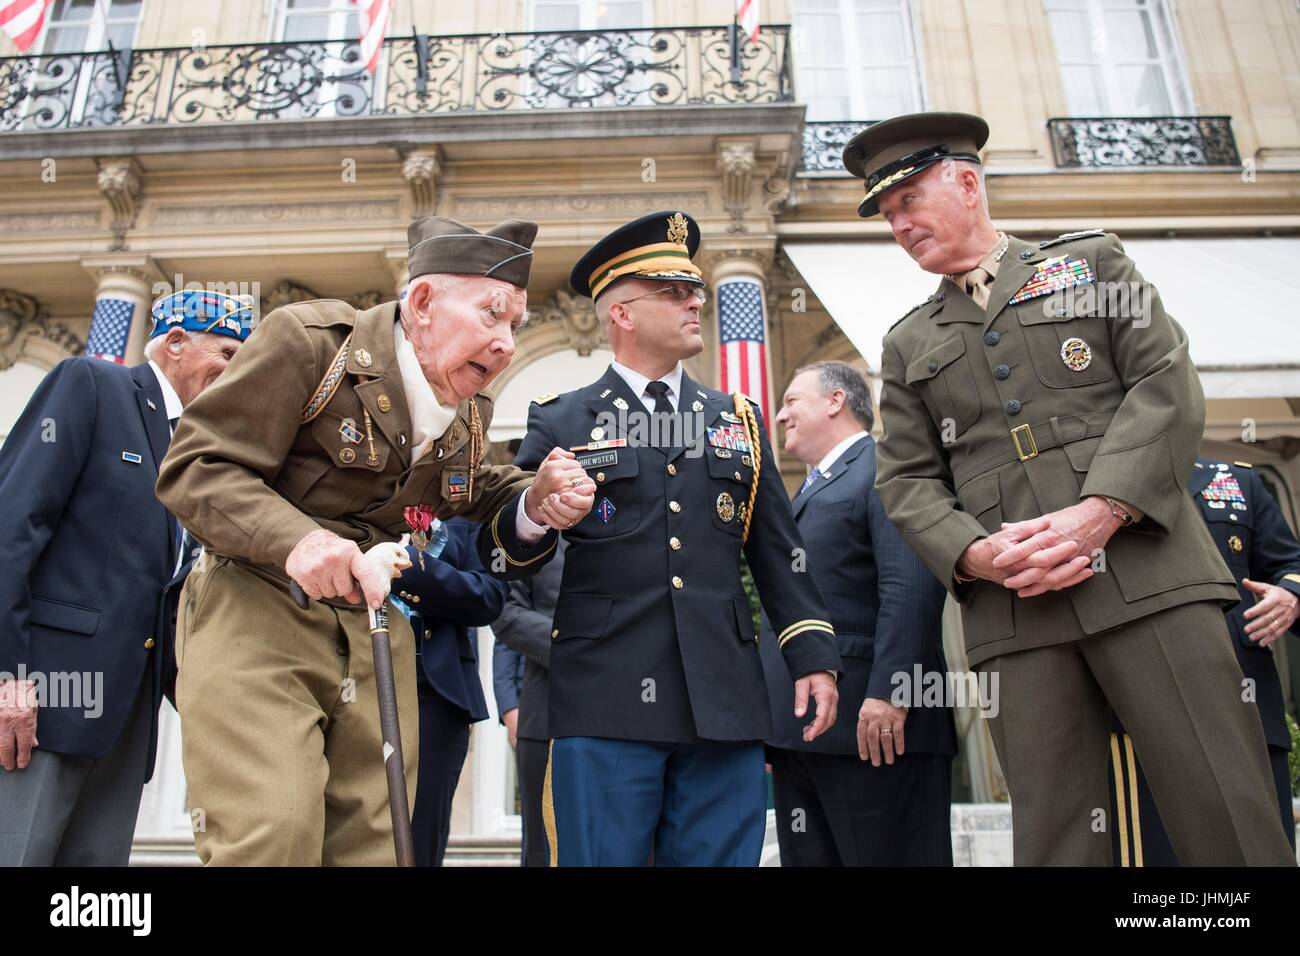 U.S. Army Lt. Col. Jessie Brewster, center, escorts World War II veteran Pvt. Joseph Reilly, left, to his seat as - Stock Image